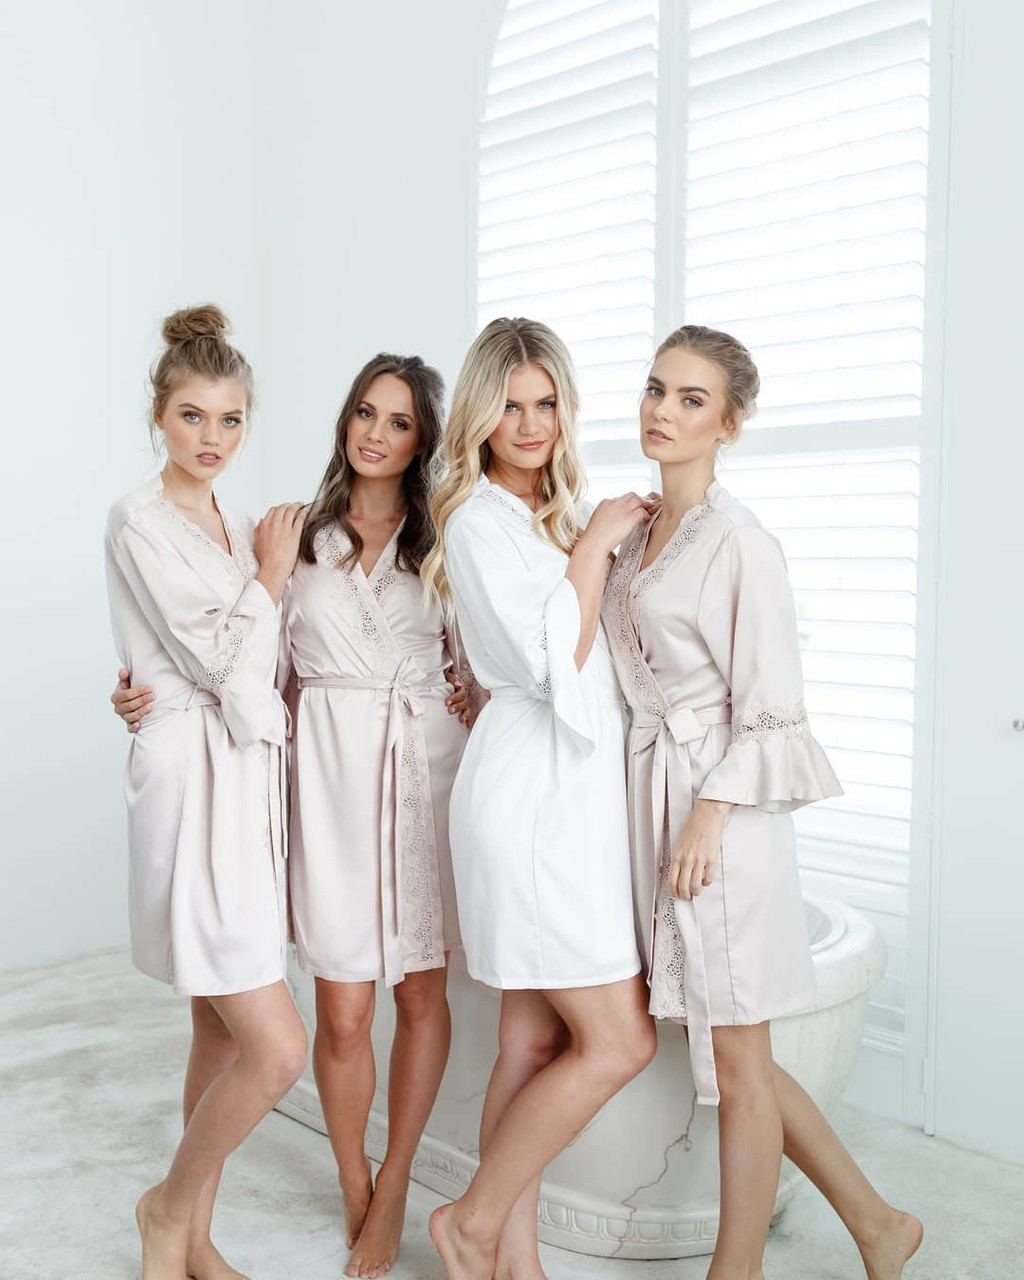 Gift your bridesmaids with a beautiful keepsake ✨ stunning ladies wear the Chloe satin robe. Available for pre order with dispatch